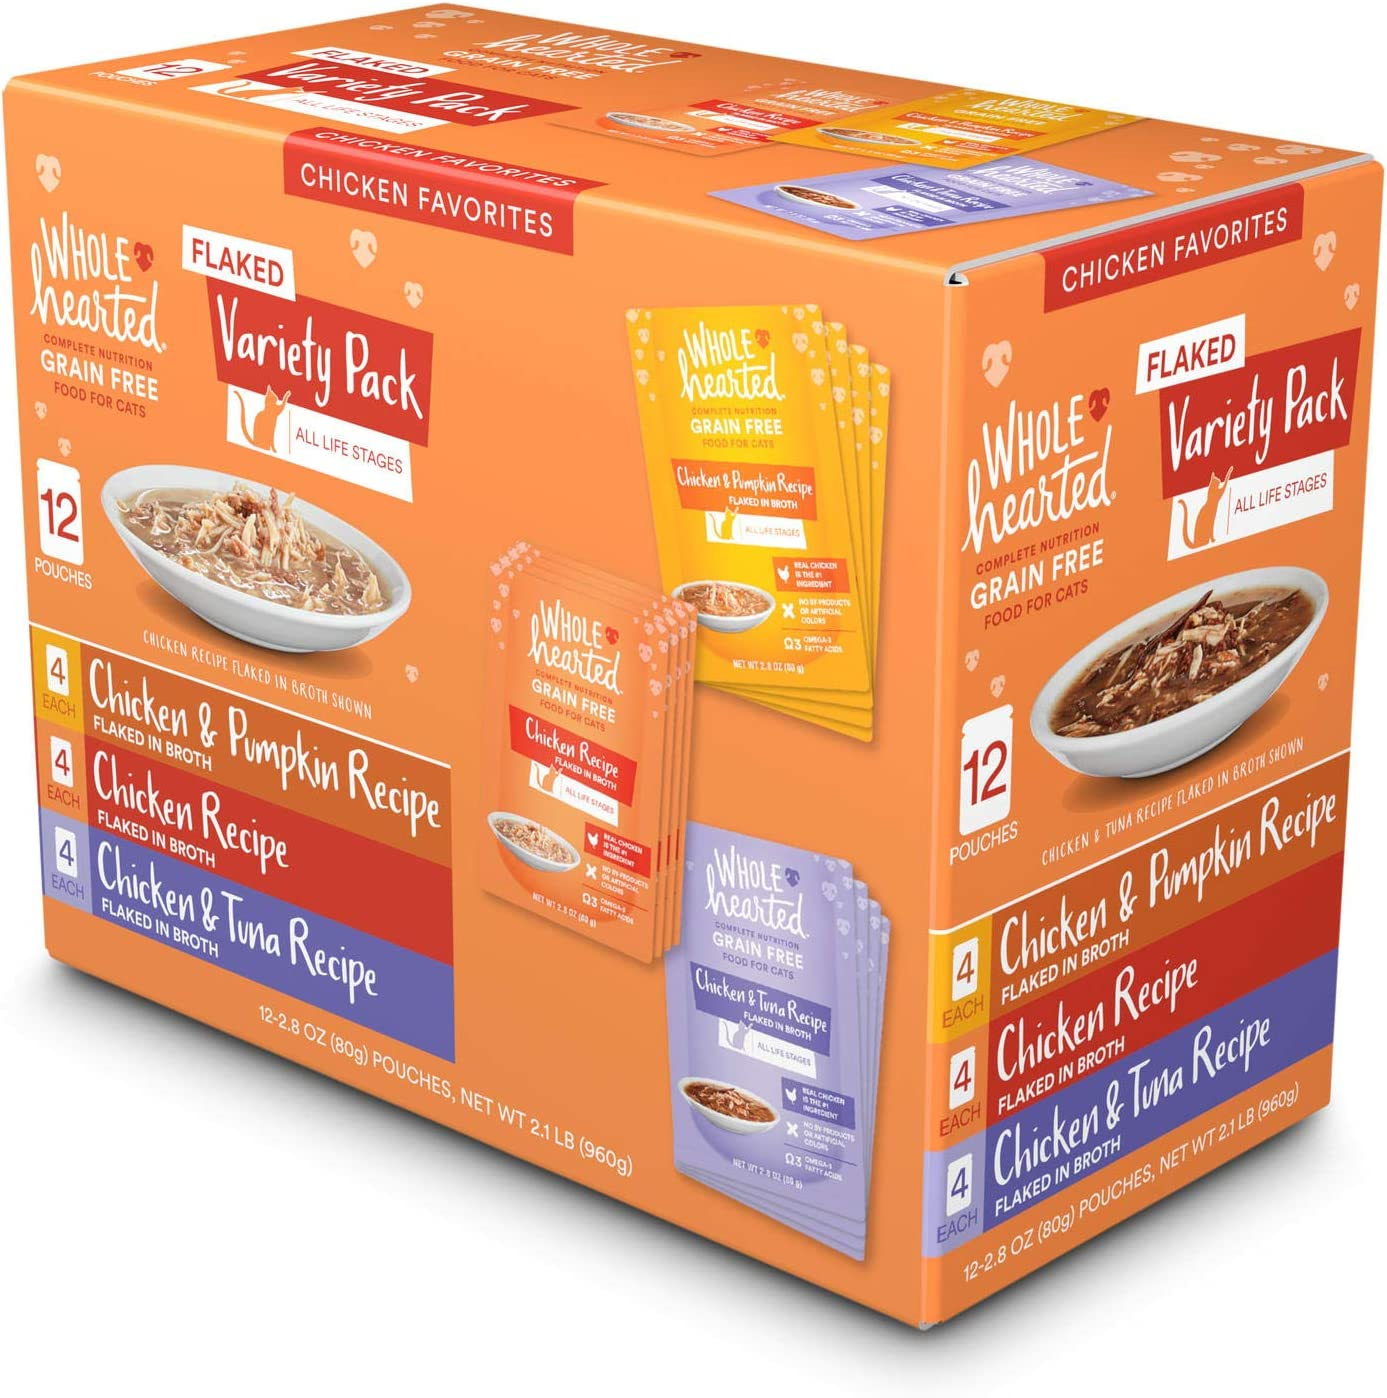 WholeHearted Grain Free Chicken Favorites Flaked Wet Cat Food Variety Pack, 2.8 oz., Count of 12